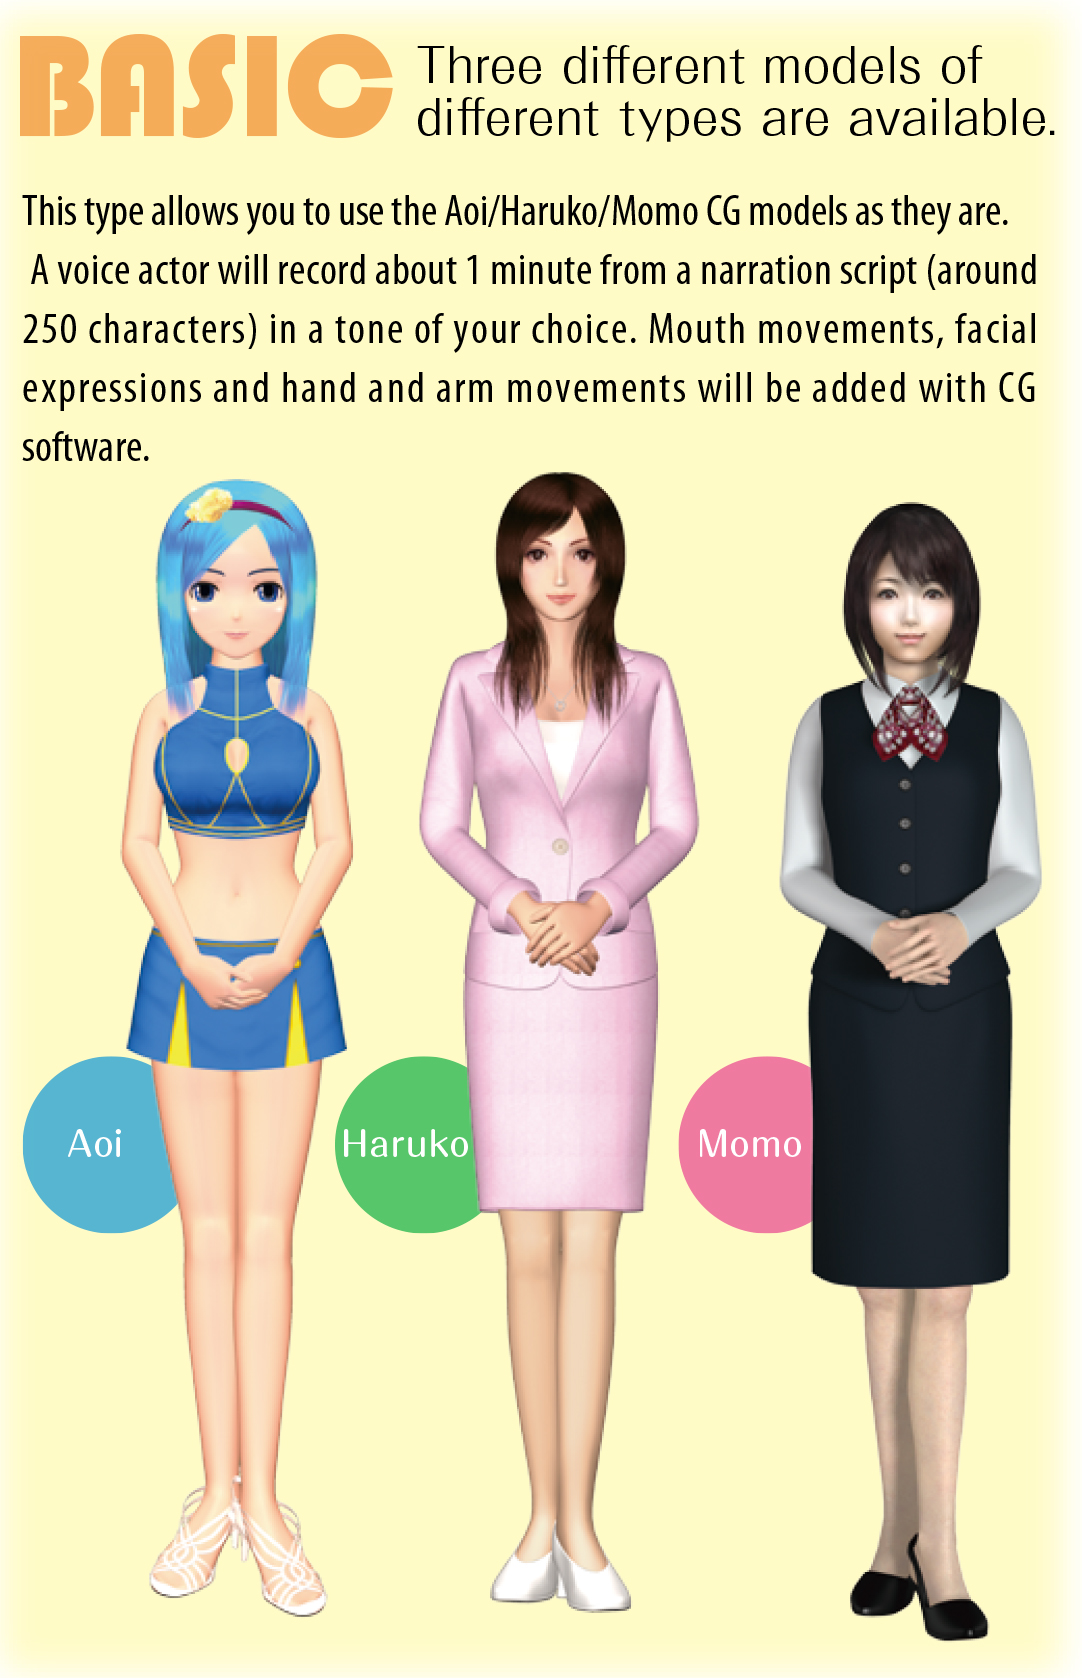 BASIC Three different models of different types are available. This type allows you to use the Aoi/Haruko/Momo CG models as they are. A voice actor will record about 1 minute from a narration script (around 250 characters) in a tone of your choice. Mouth movements, facial expressions and hand and arm movements will be added with CG software.